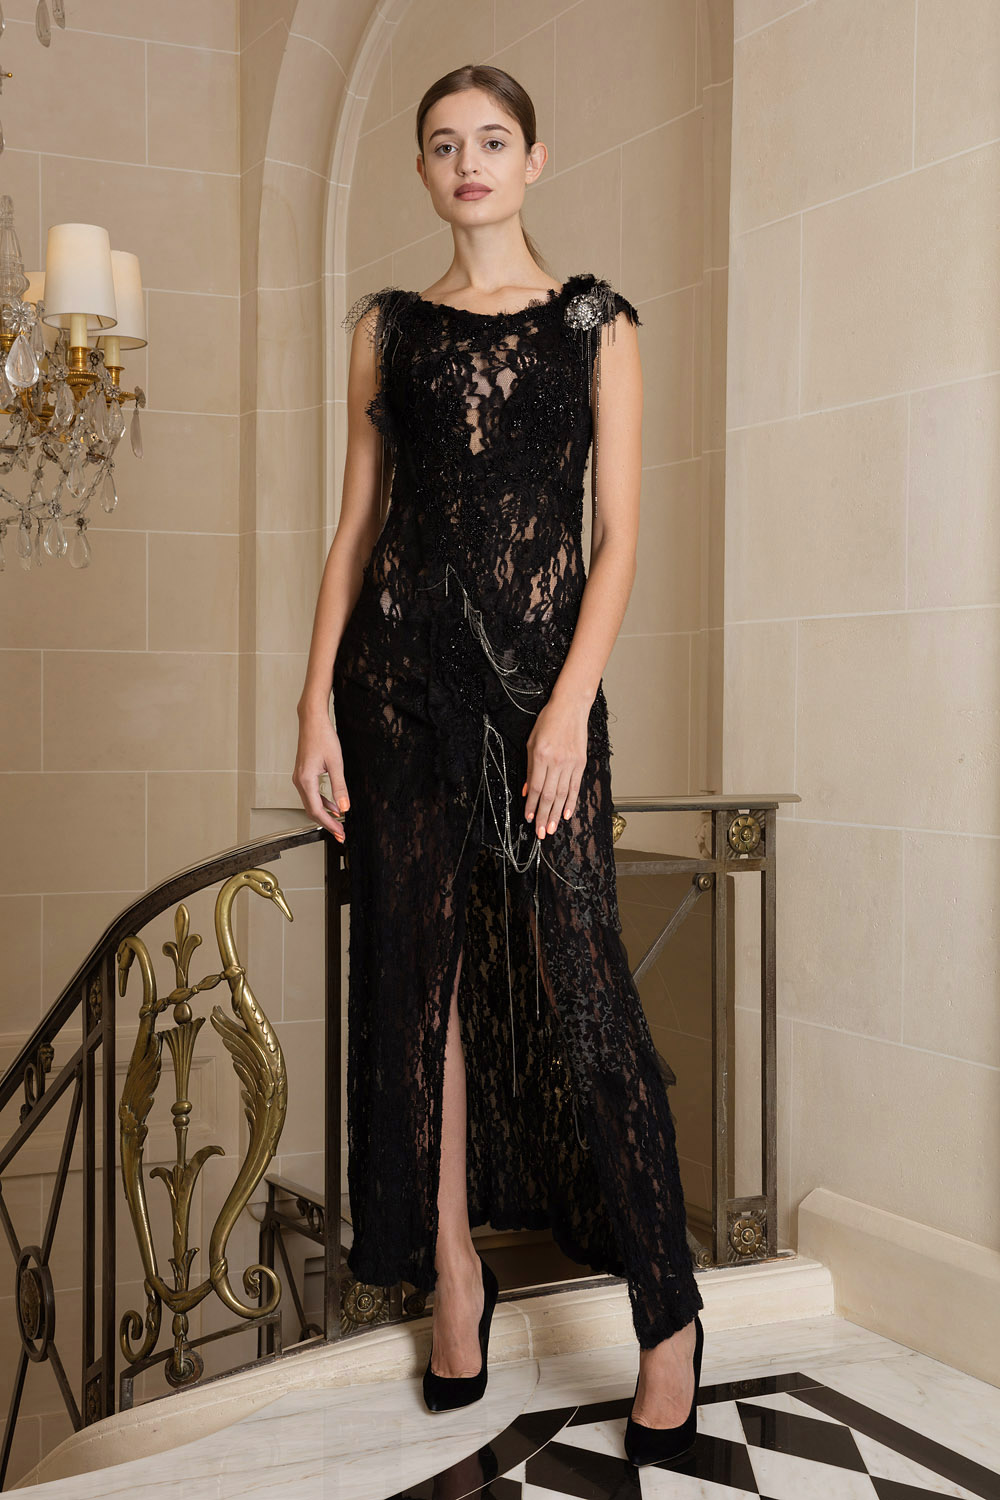 Black haute couture tulle dress